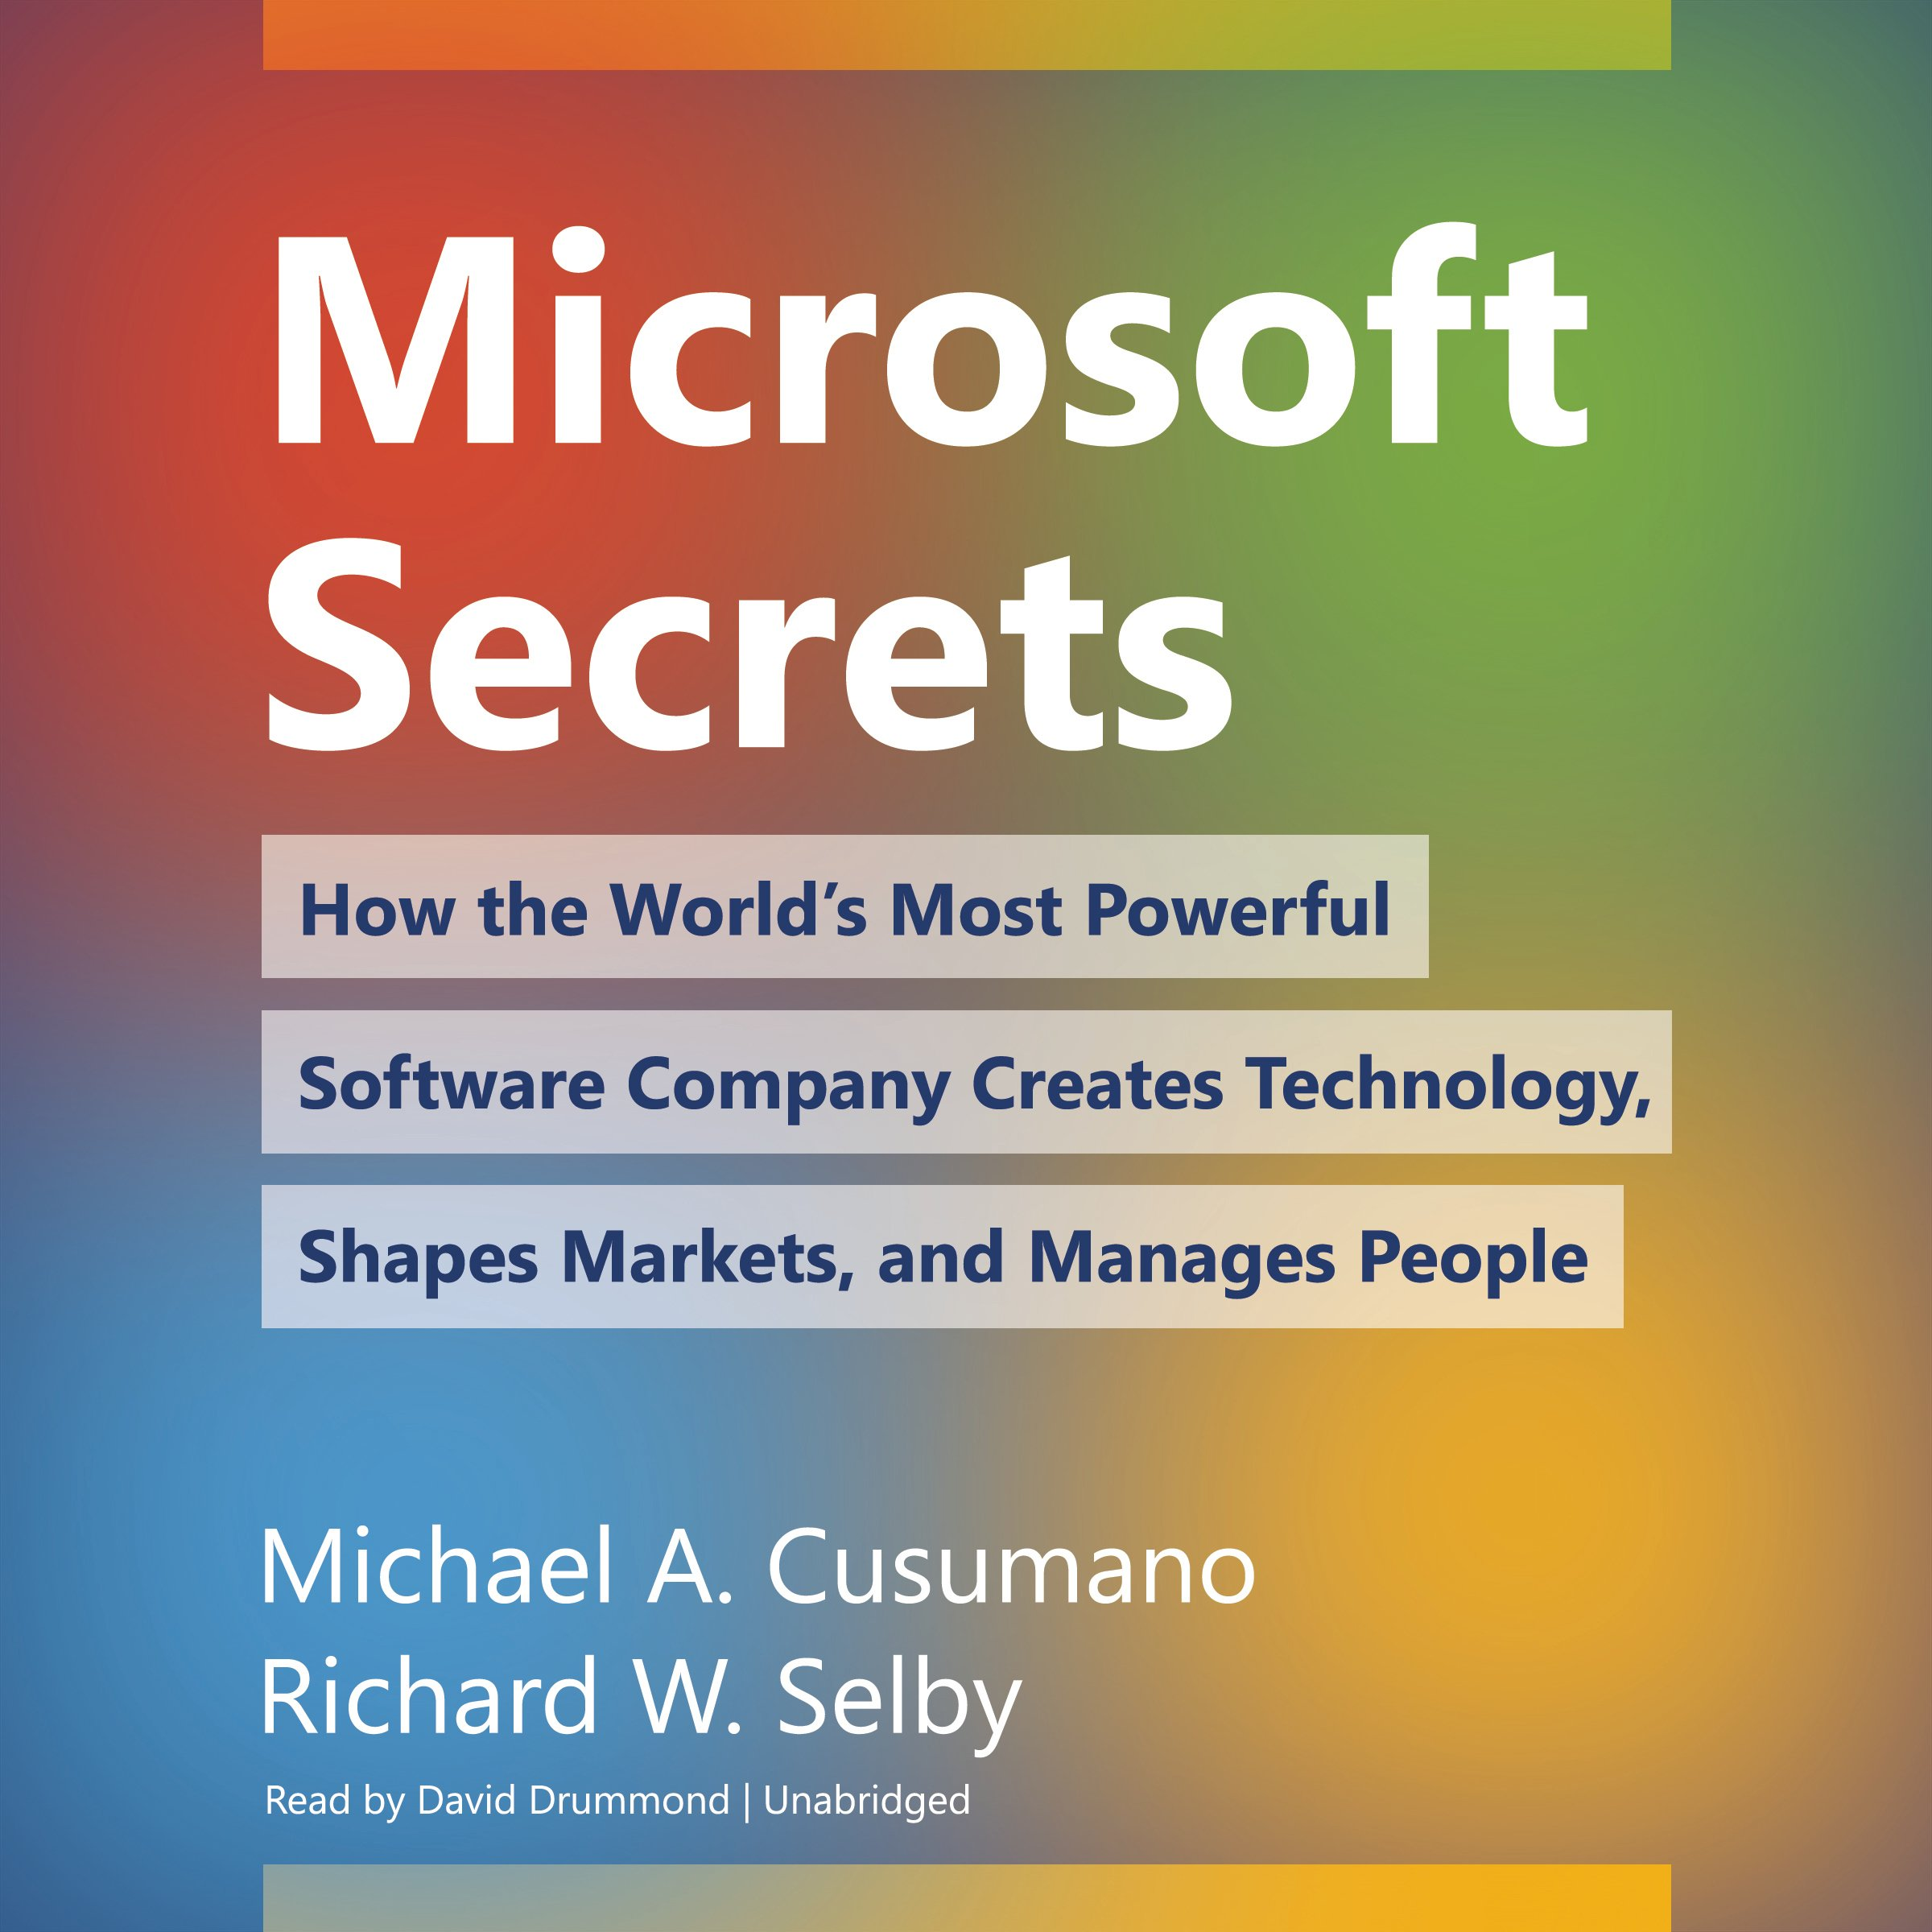 Read Online Microsoft Secrets: How the World's Most Powerful Software Company Creates Technology, Shapes Markets, and Manages People ebook